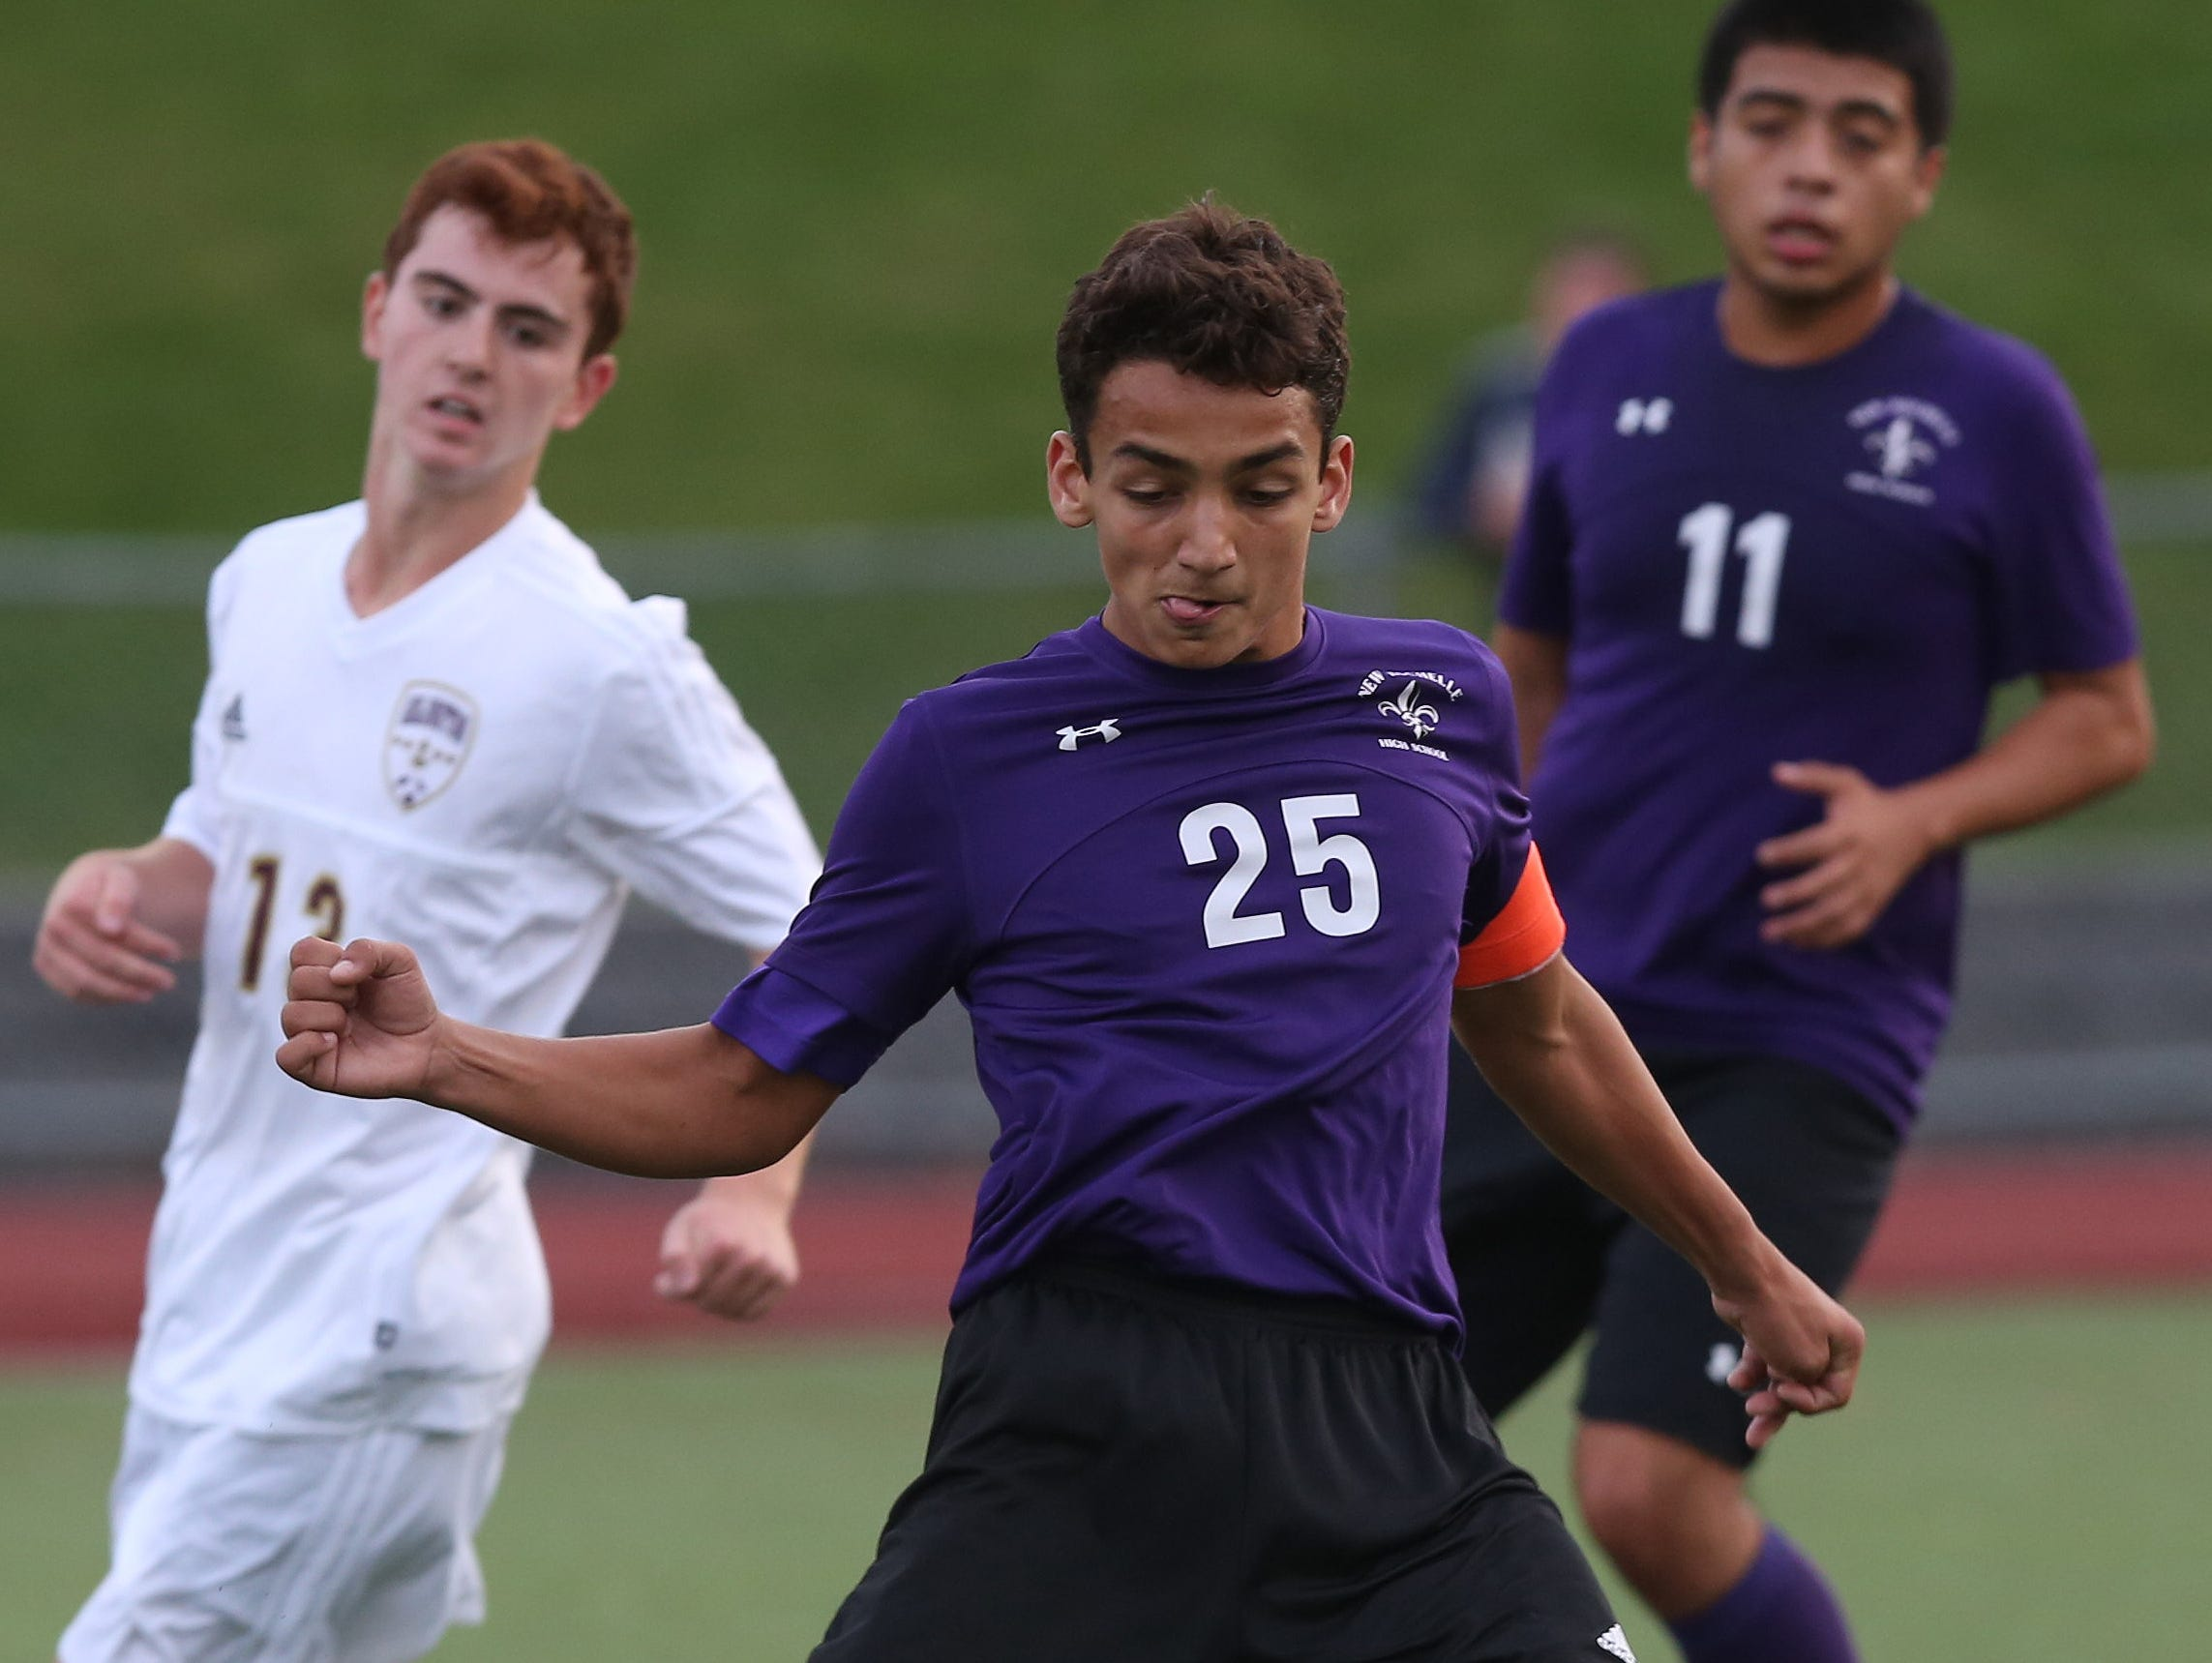 New Rochelle defeated Arlington 3-0 in the boys soccer Section 1 Class AA championship game at Lakeland High School in Shrub Oak High School Oct. 29, 2016.